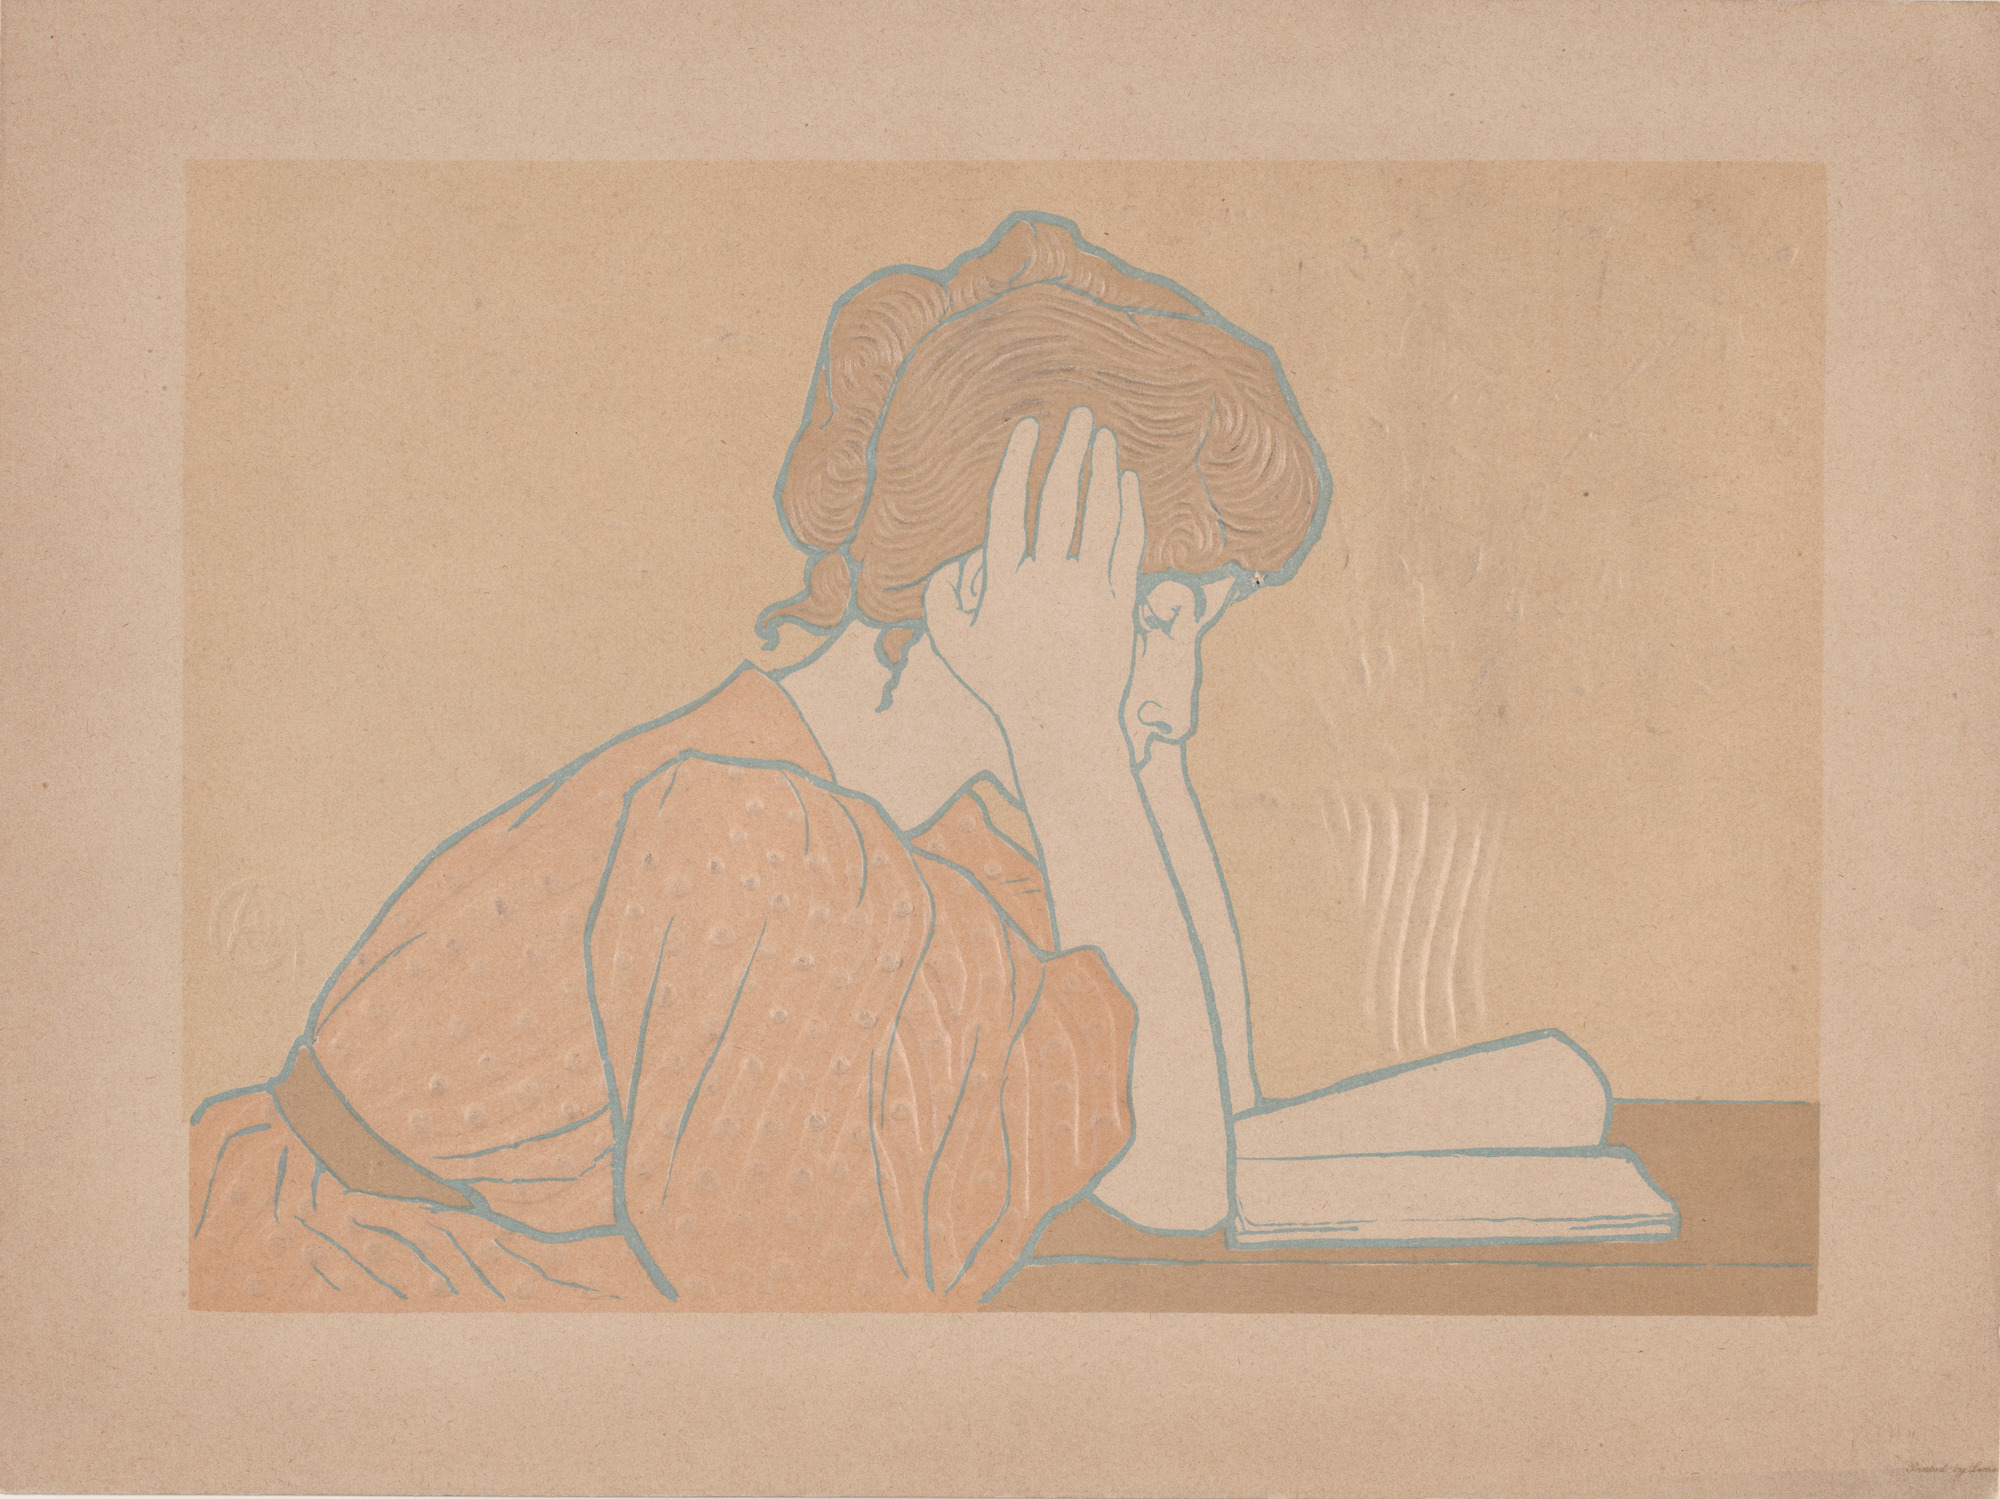 a print of a woman reading. She is seated a table, leaning over the book, holding her head in her hand.